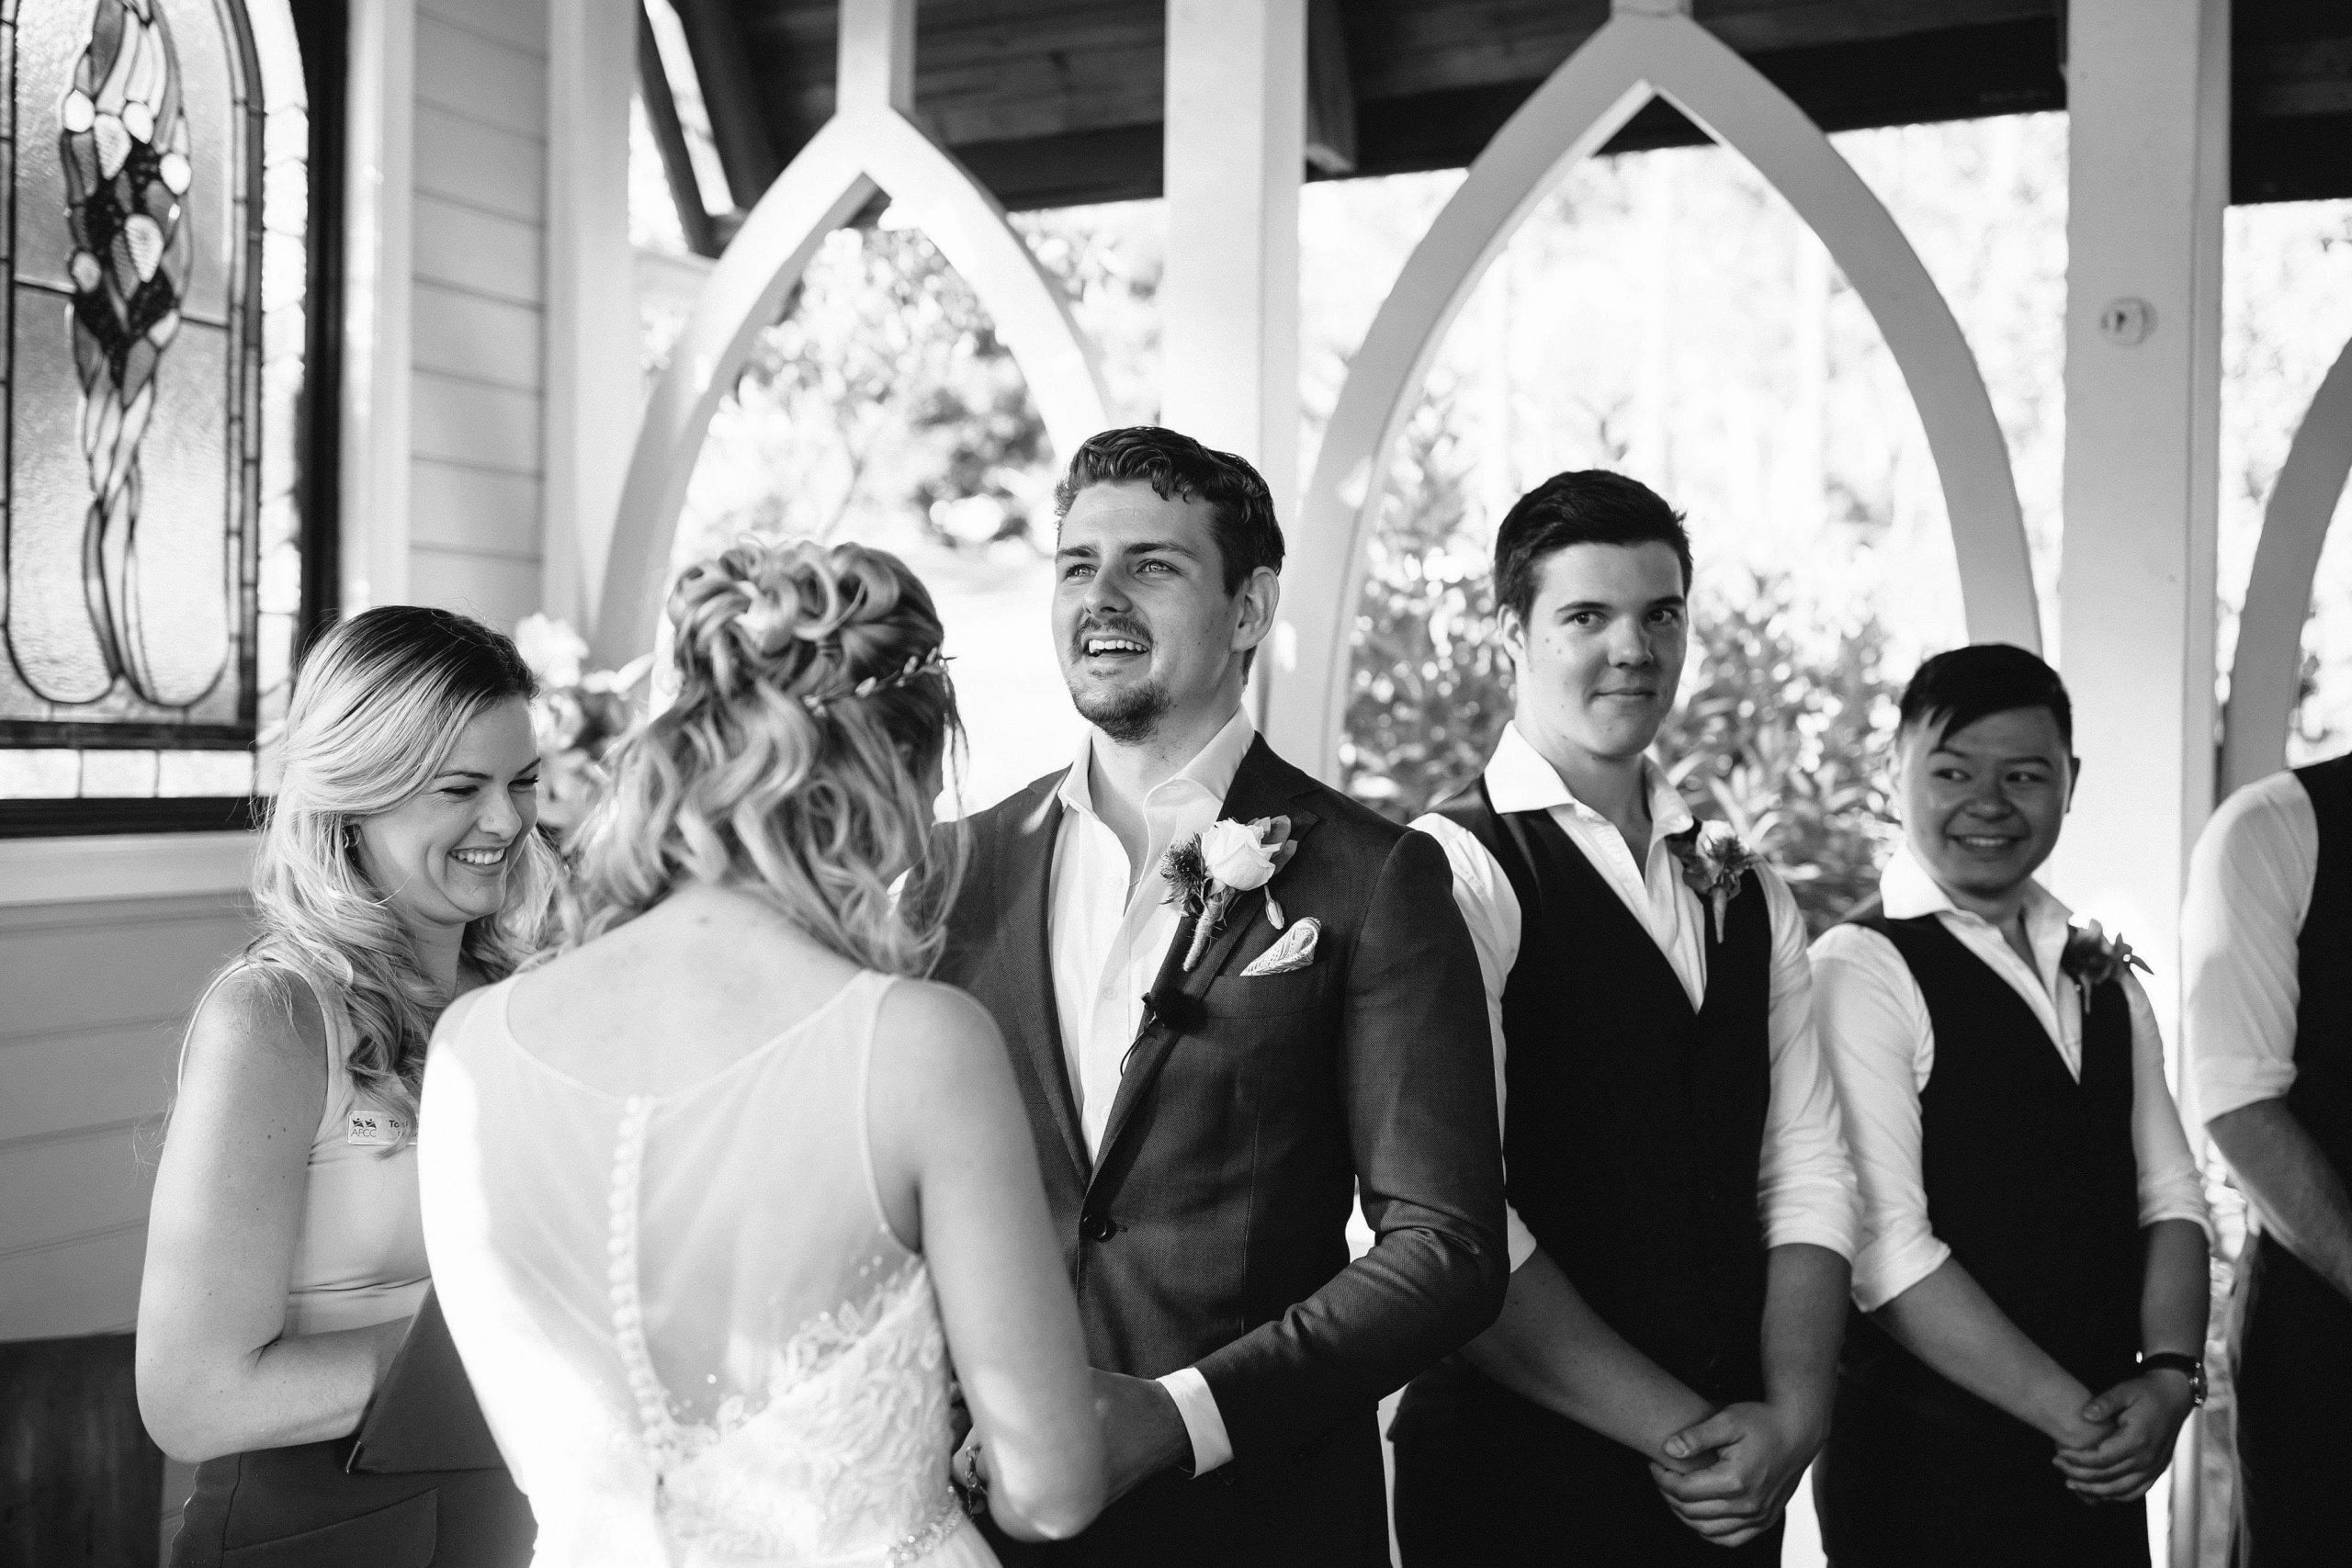 Your Wedding Ceremony - Why it Should Reflect Your Love Story